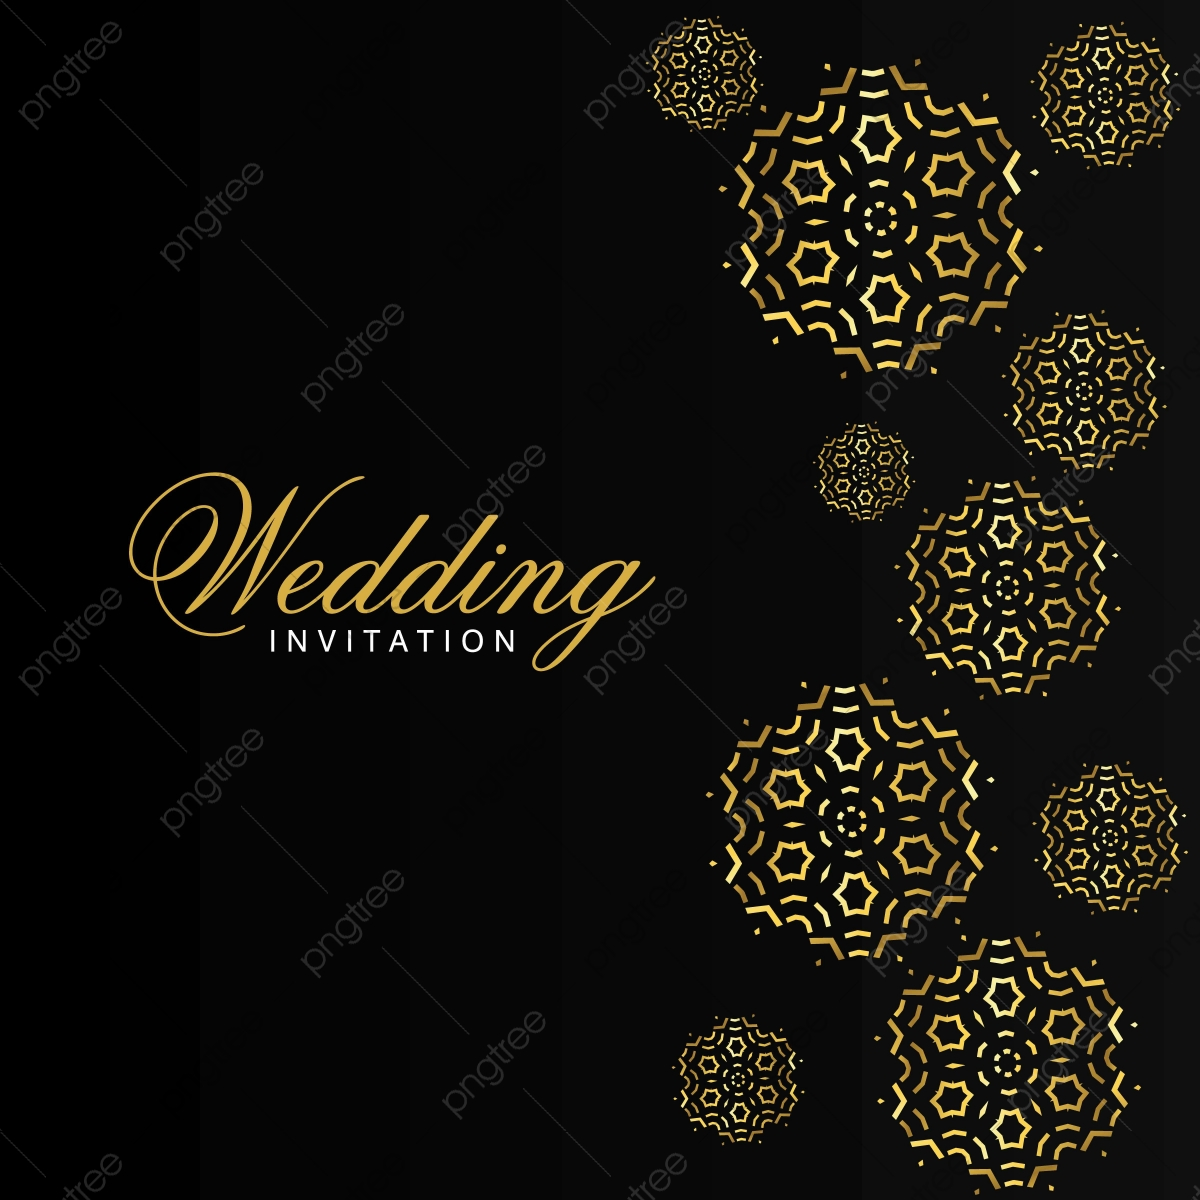 Wedding Card With Creative Design And Elegent Style Invitation Wedding Black And Gold Creative Wedding Invitation Card Png And Vector With Transparent Background For Free Download